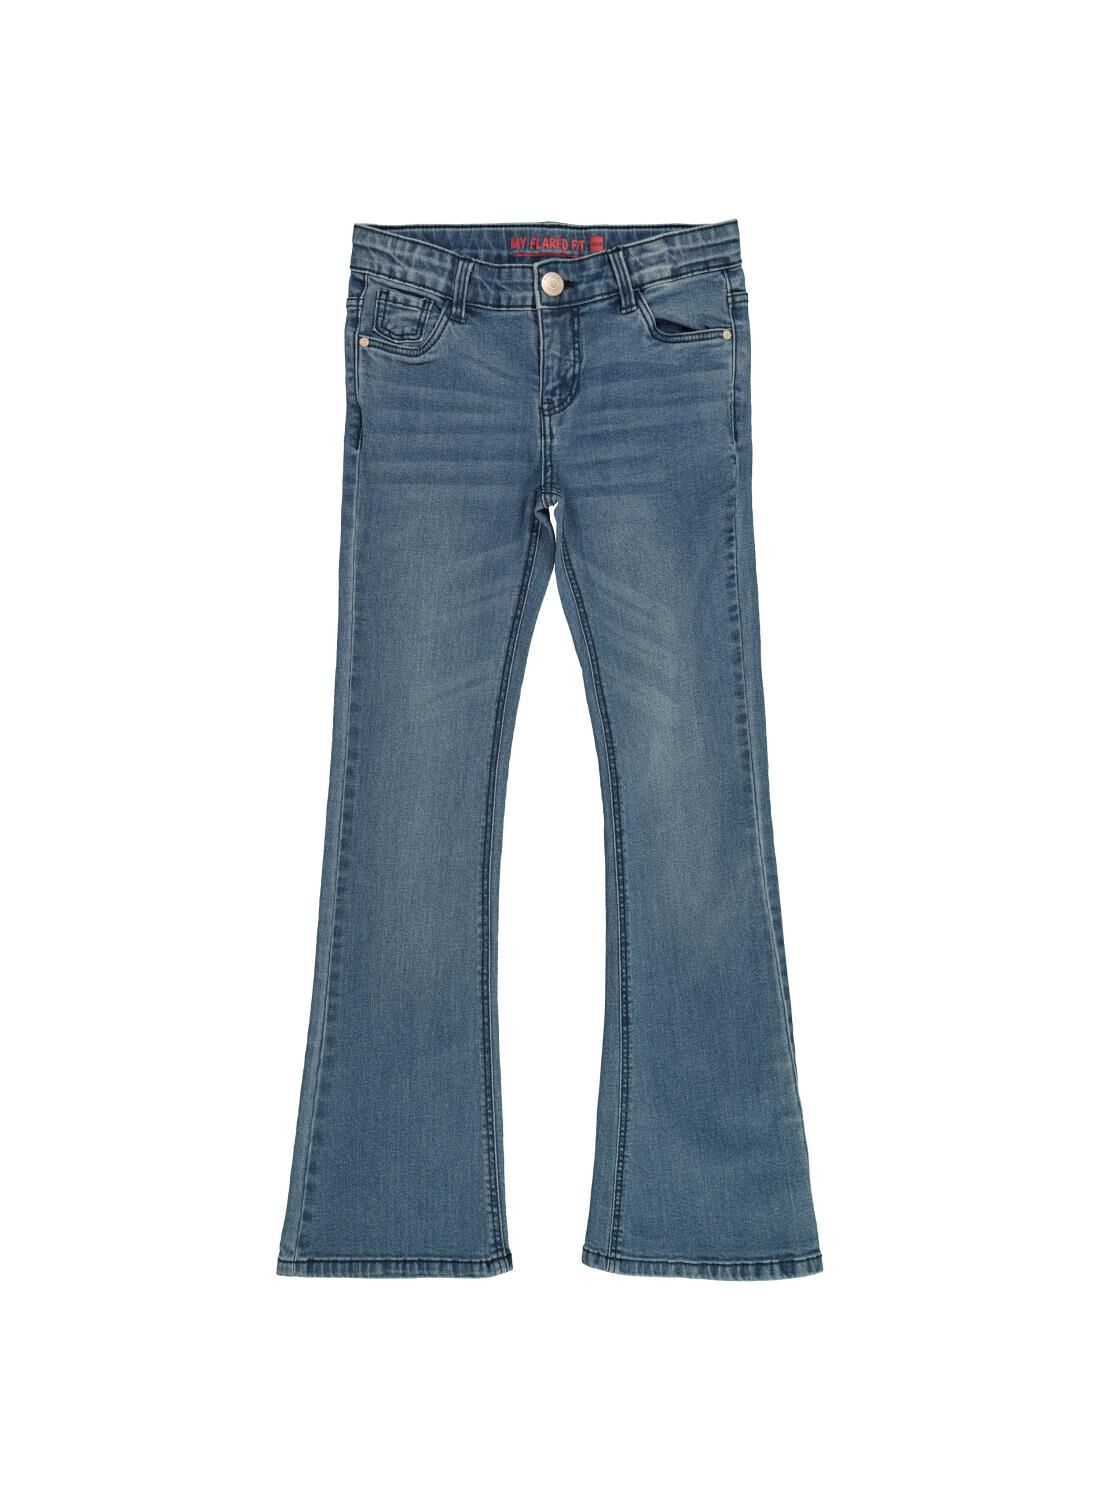 HEMA Kinder Flared Denim (denim)